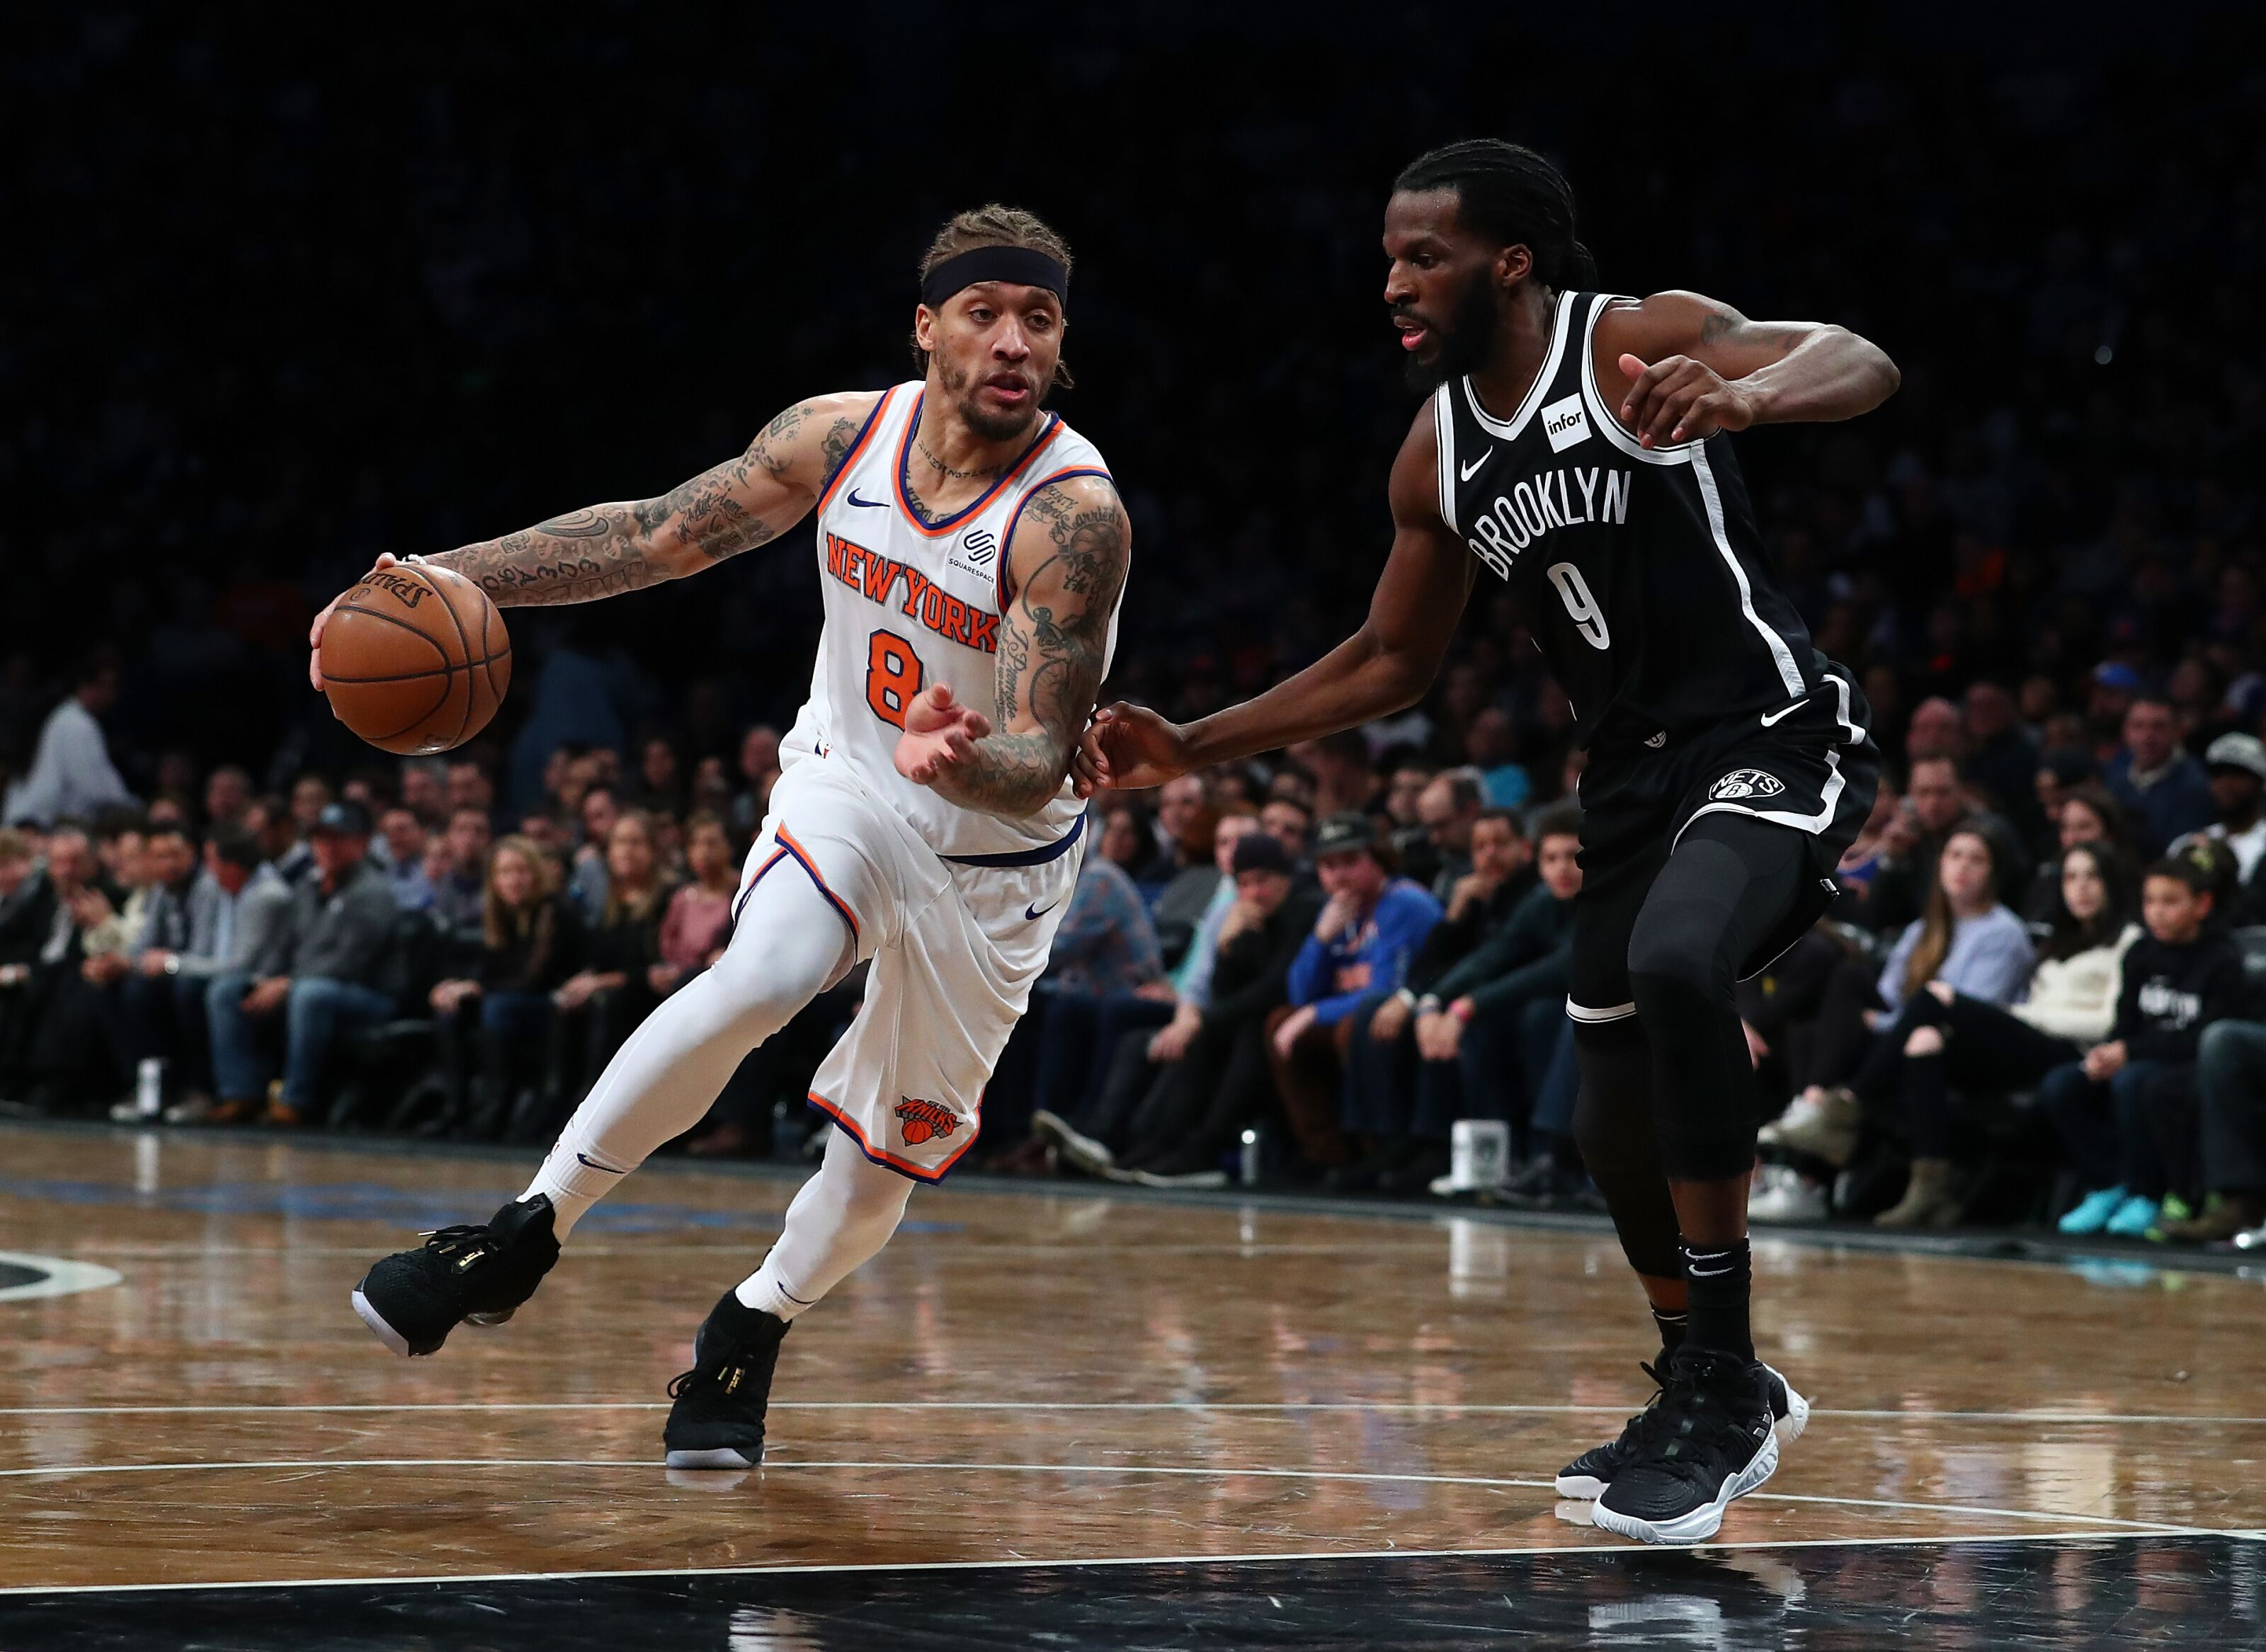 New York Knicks: New York Knicks Or Brooklyn Nets, Who Will Be The Better Team?